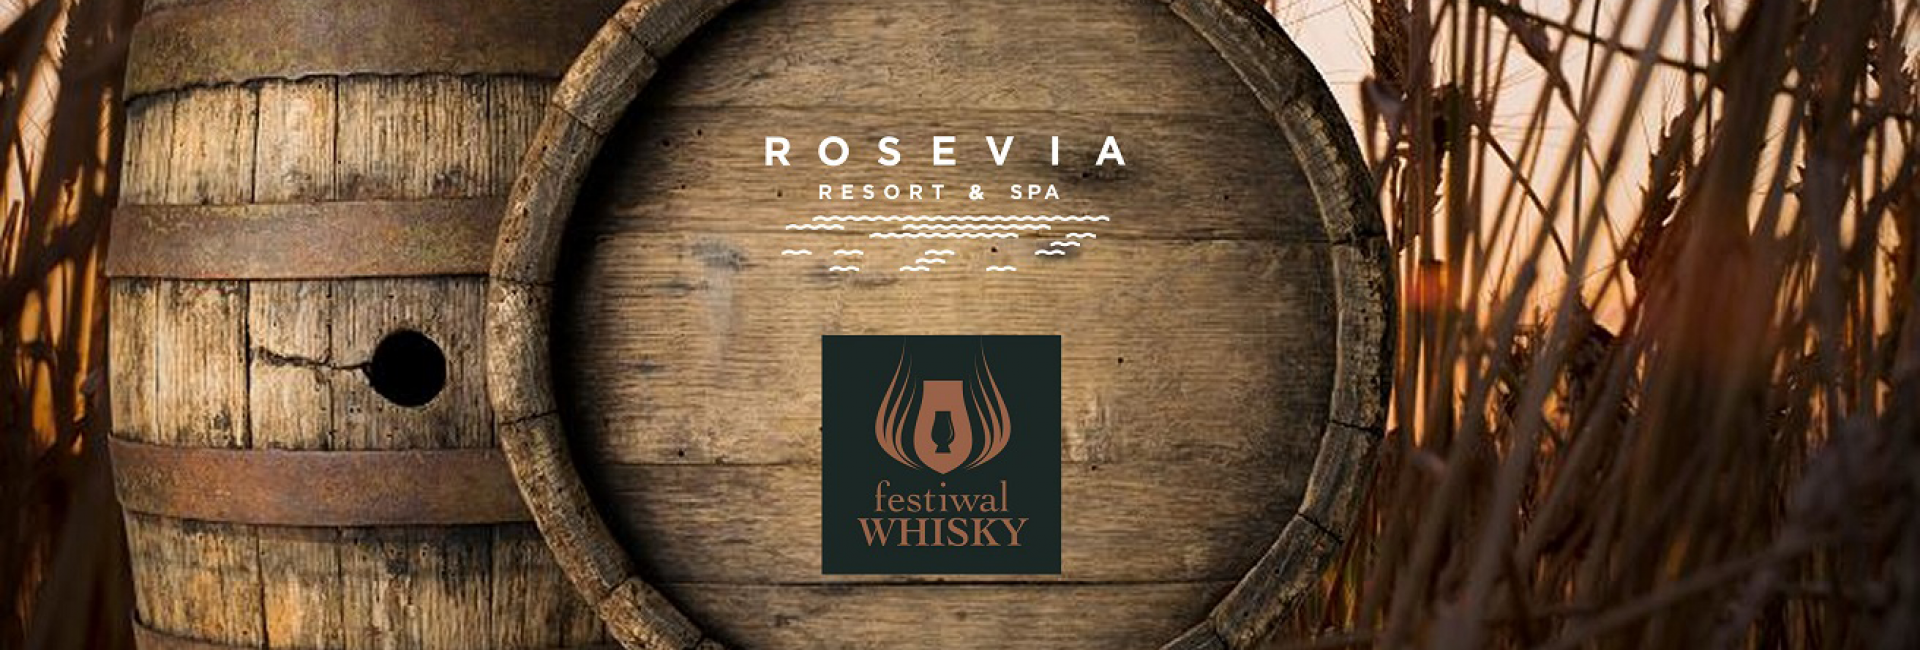 WEEKEND WITH THE WHISKEY FESTIVAL 23-25.08.2019